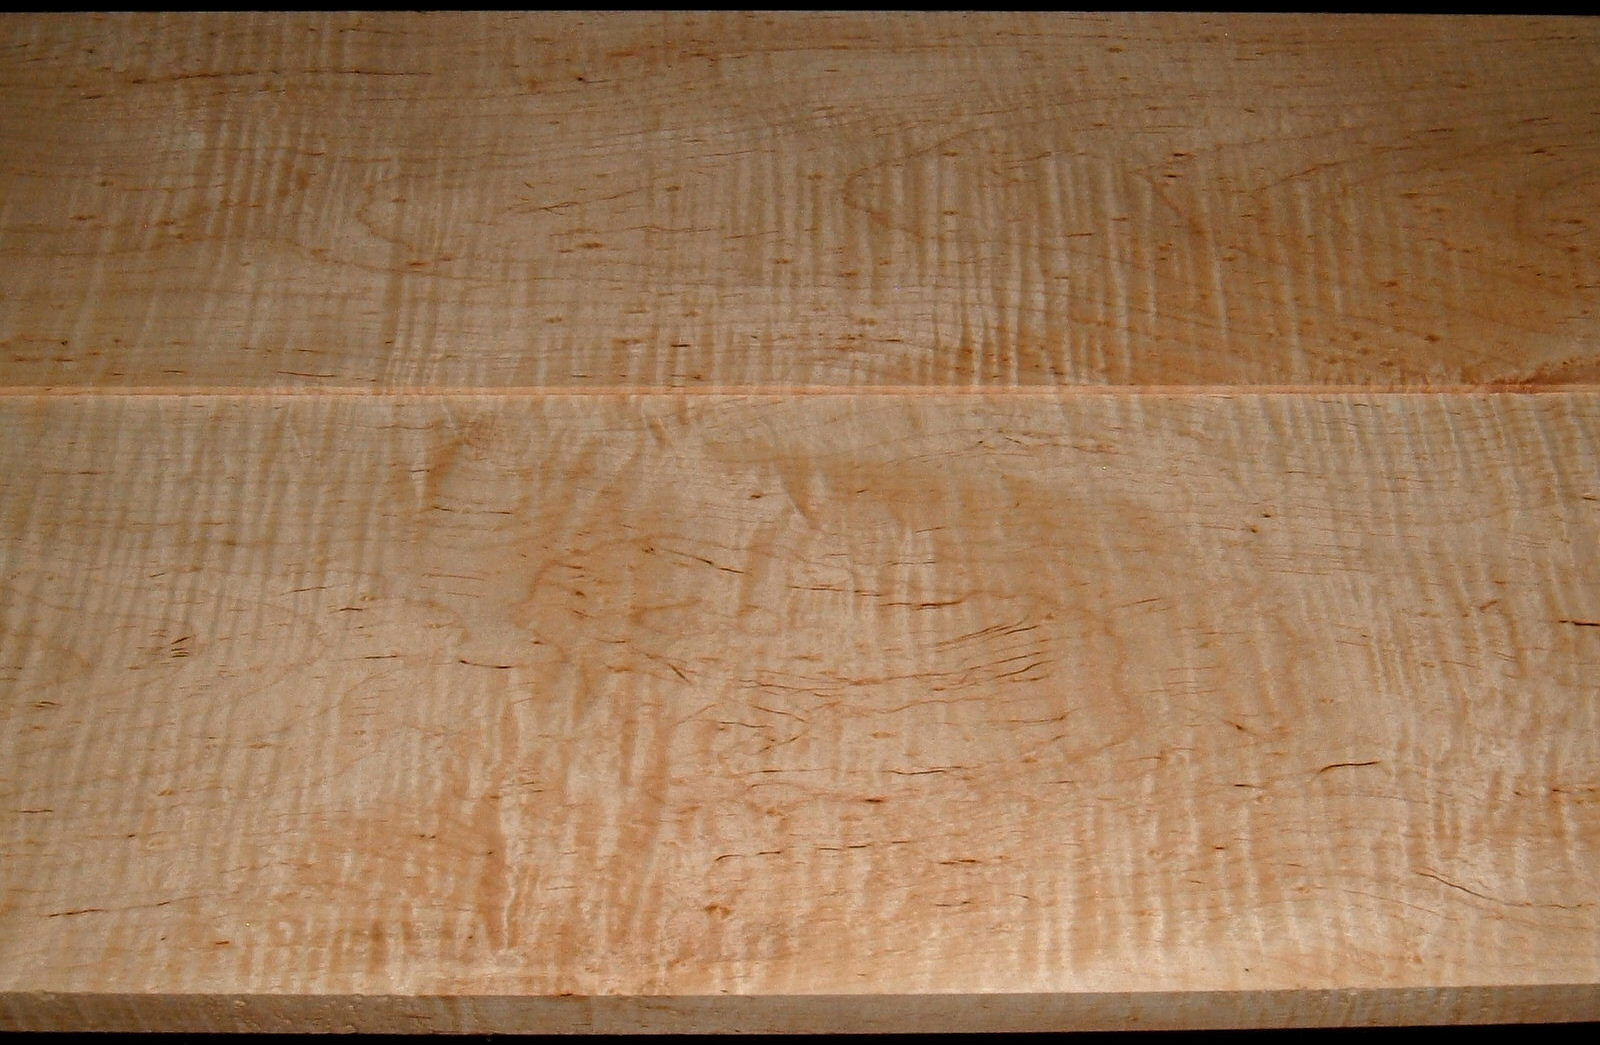 M2007-551, 1-3/16x9-1/4x41, 1-1/16x10-1/4x41, Curly Tiger Maple, Cut from Same Plank, Mineral Streaked Curly Maple